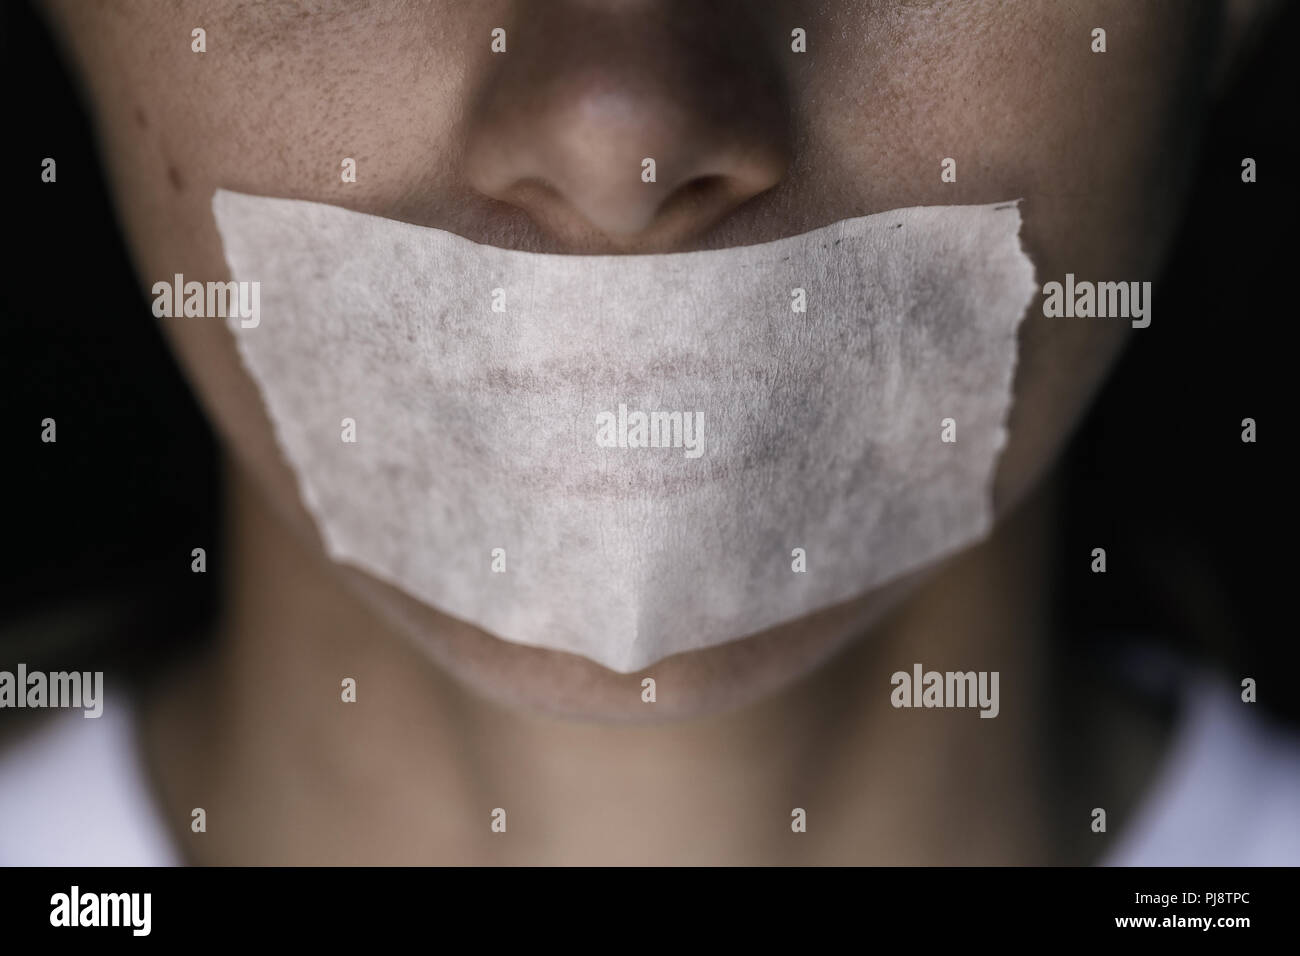 Censorship in the Modern World: A man's mouth sealed with an adhesive tape, close-up - Stock Image